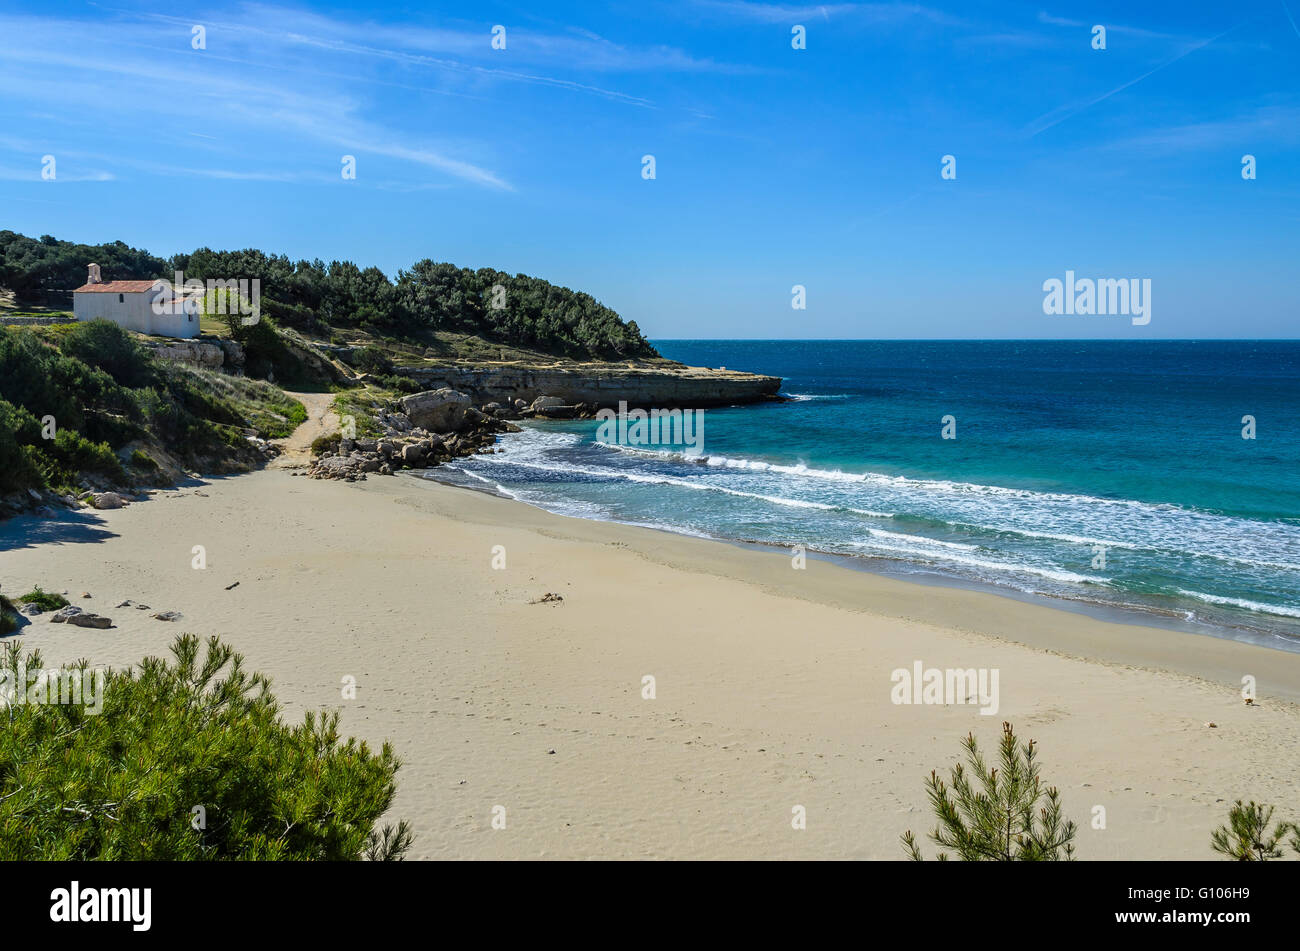 tournage camping paradis stock photos tournage camping paradis stock images alamy. Black Bedroom Furniture Sets. Home Design Ideas